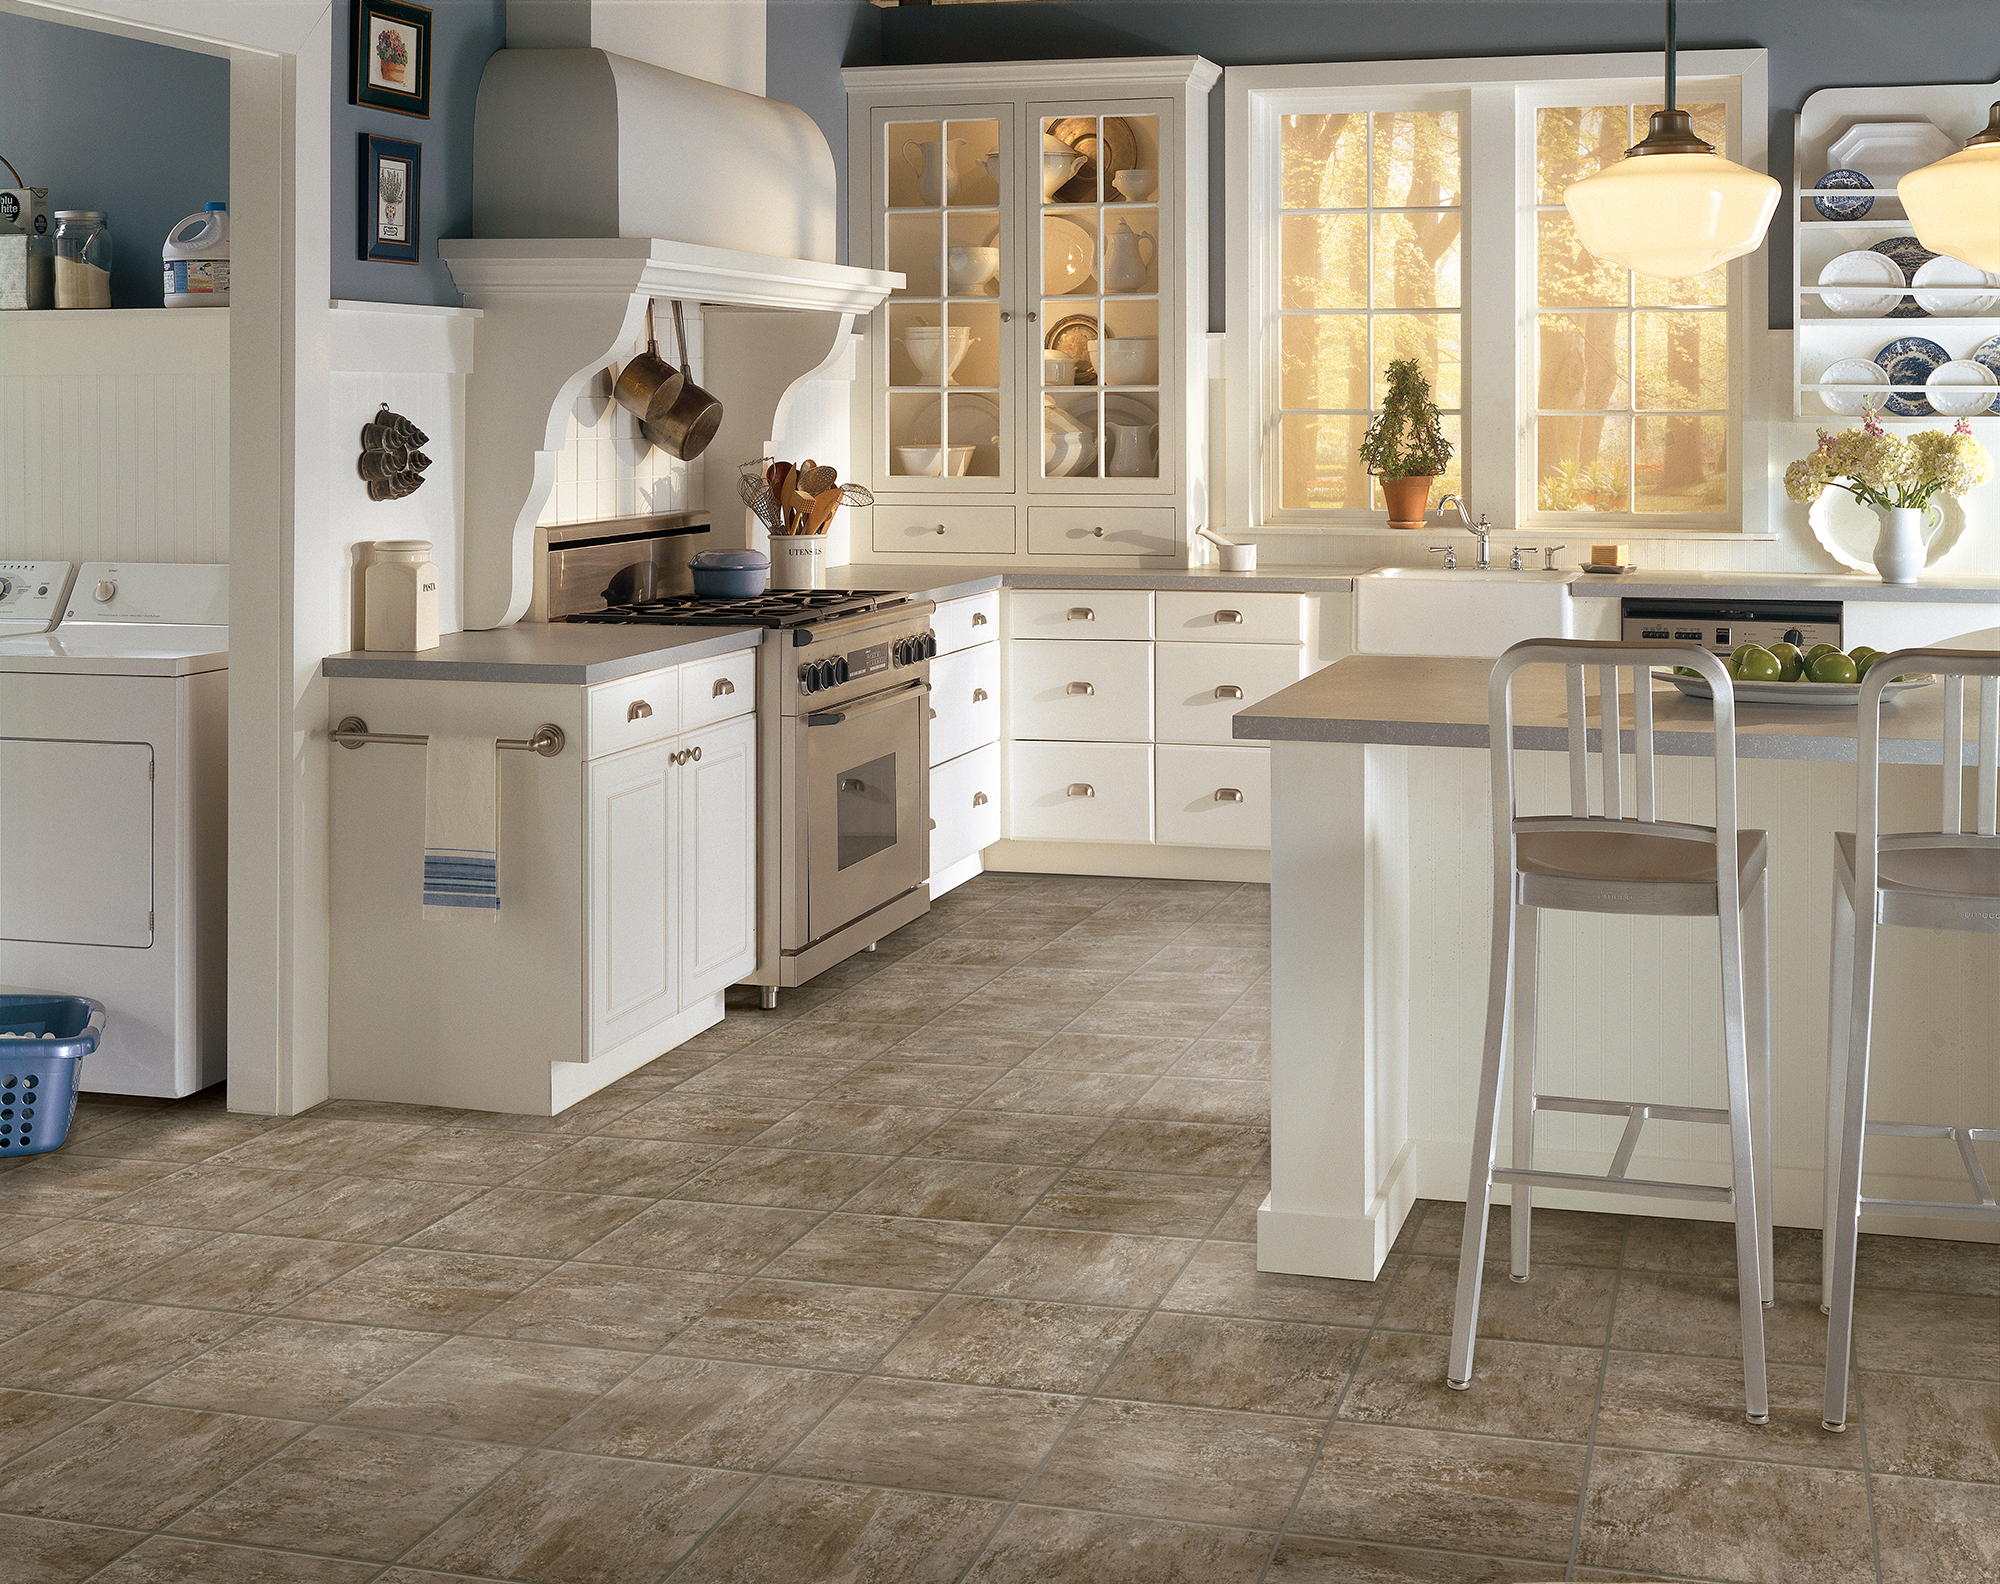 kitchen and bathroom tiles 5 flooring options for kitchens and bathrooms empire 4995